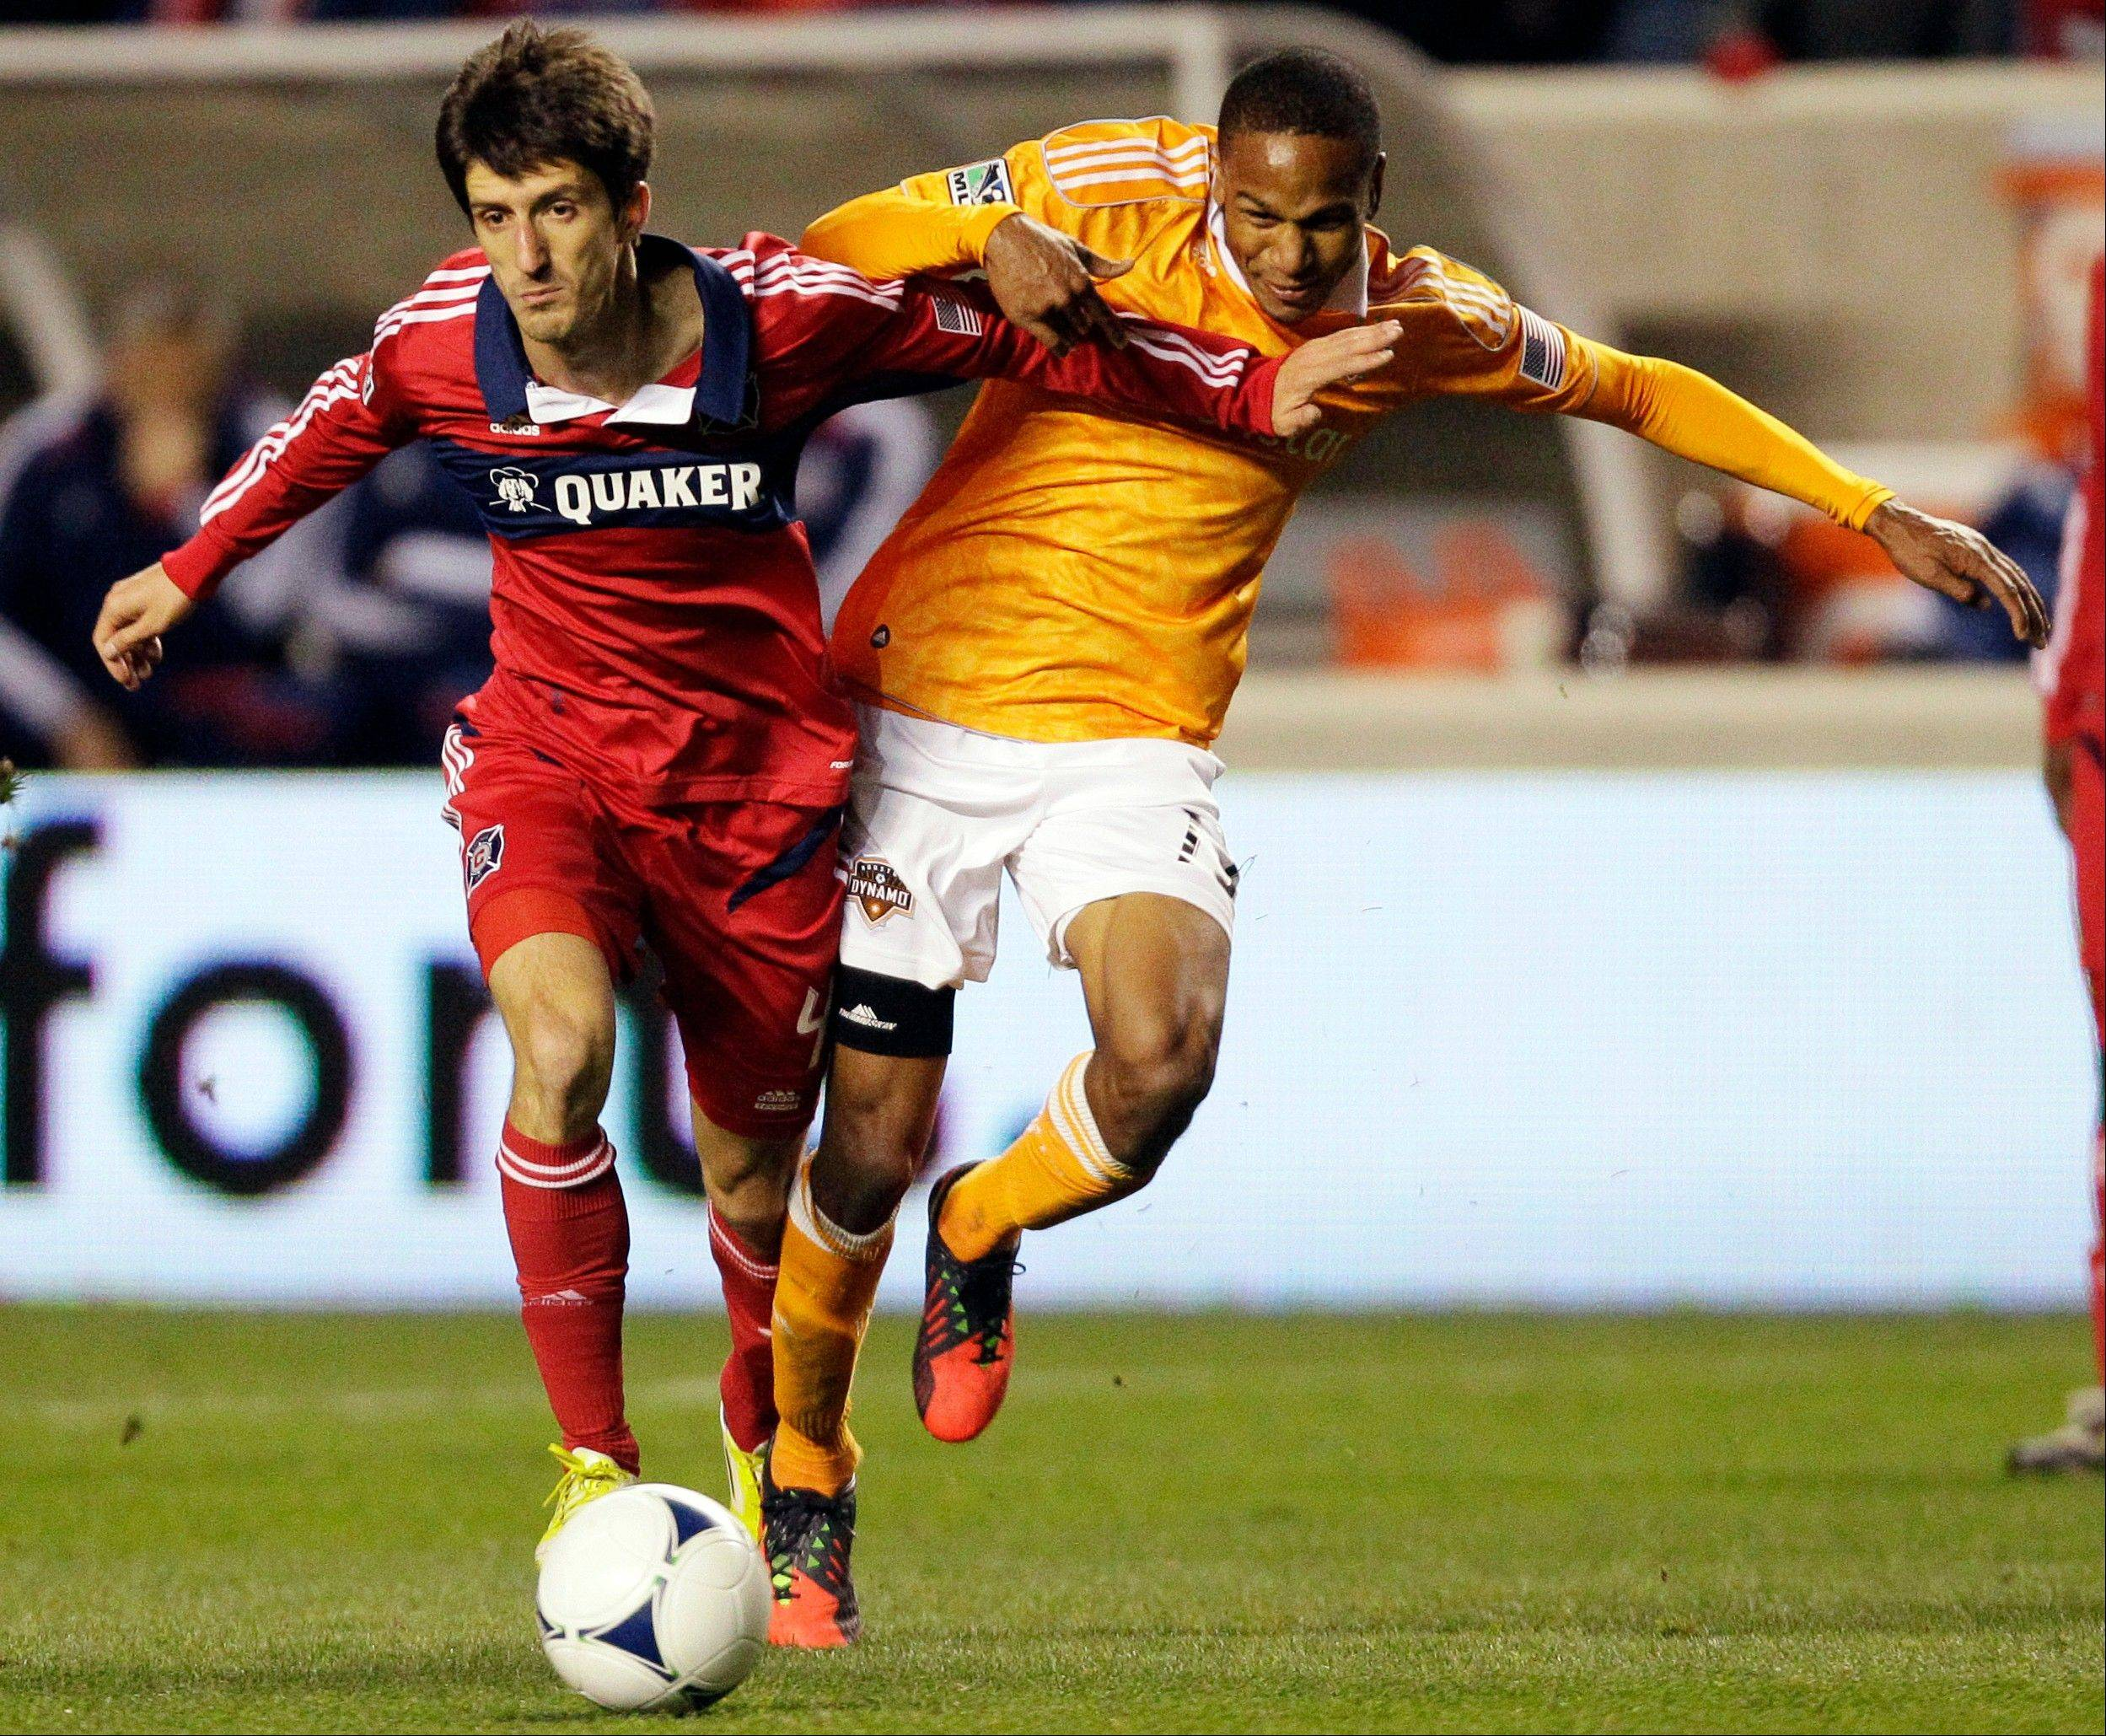 Chicago Fire midfielder Alvaro Fernandez, left, and Houston Dynamo midfielder Ricardo Clark (13) battle for the ball Saturday during the first half at Toyota Park.